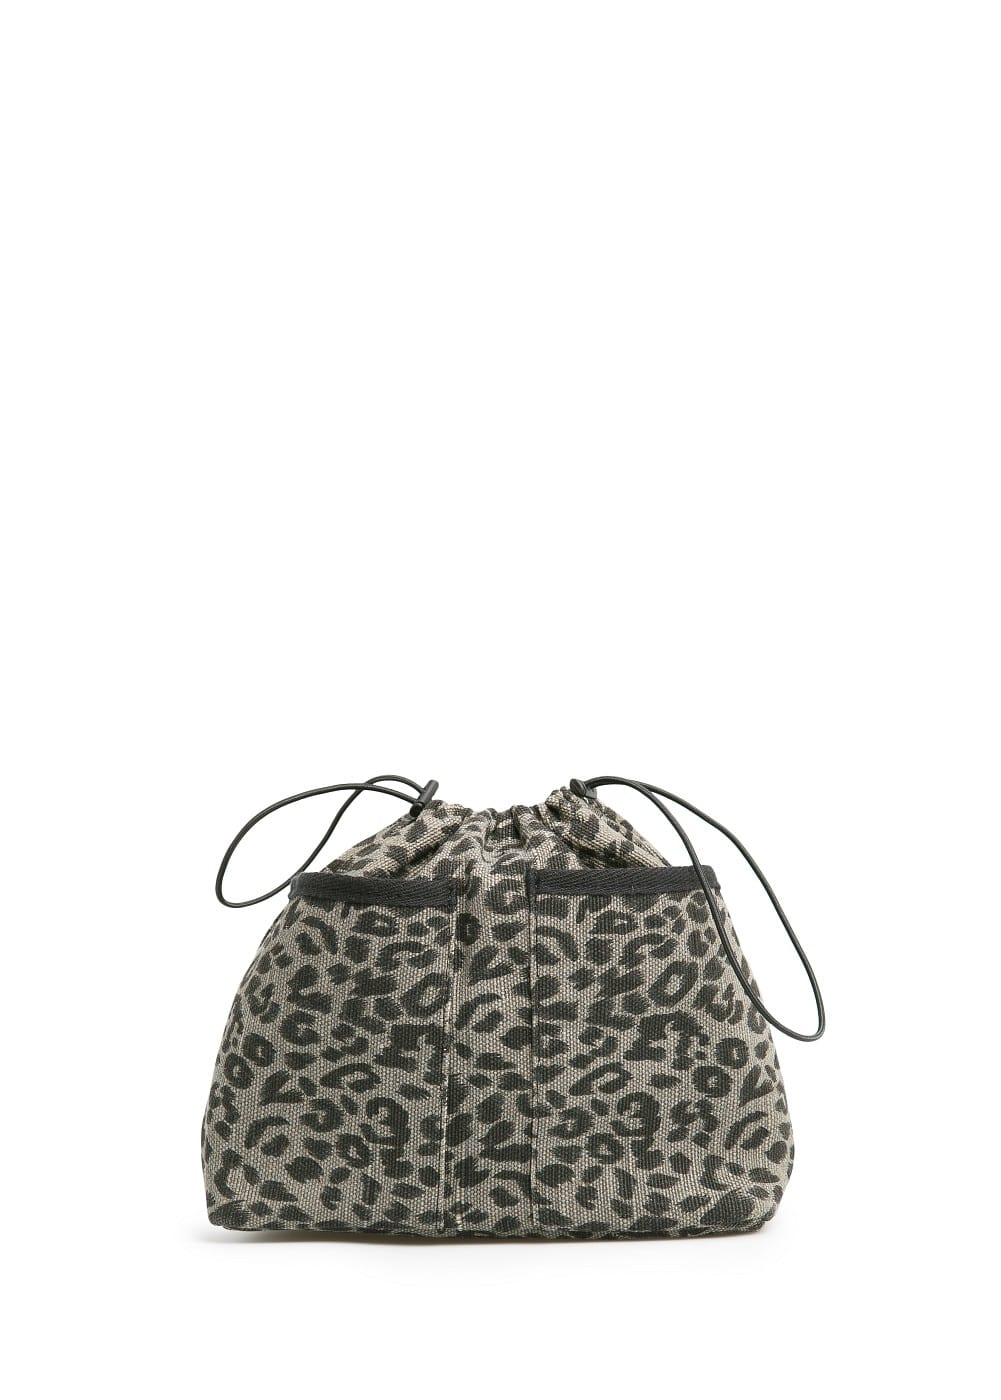 Bolso interior estampado leopardo